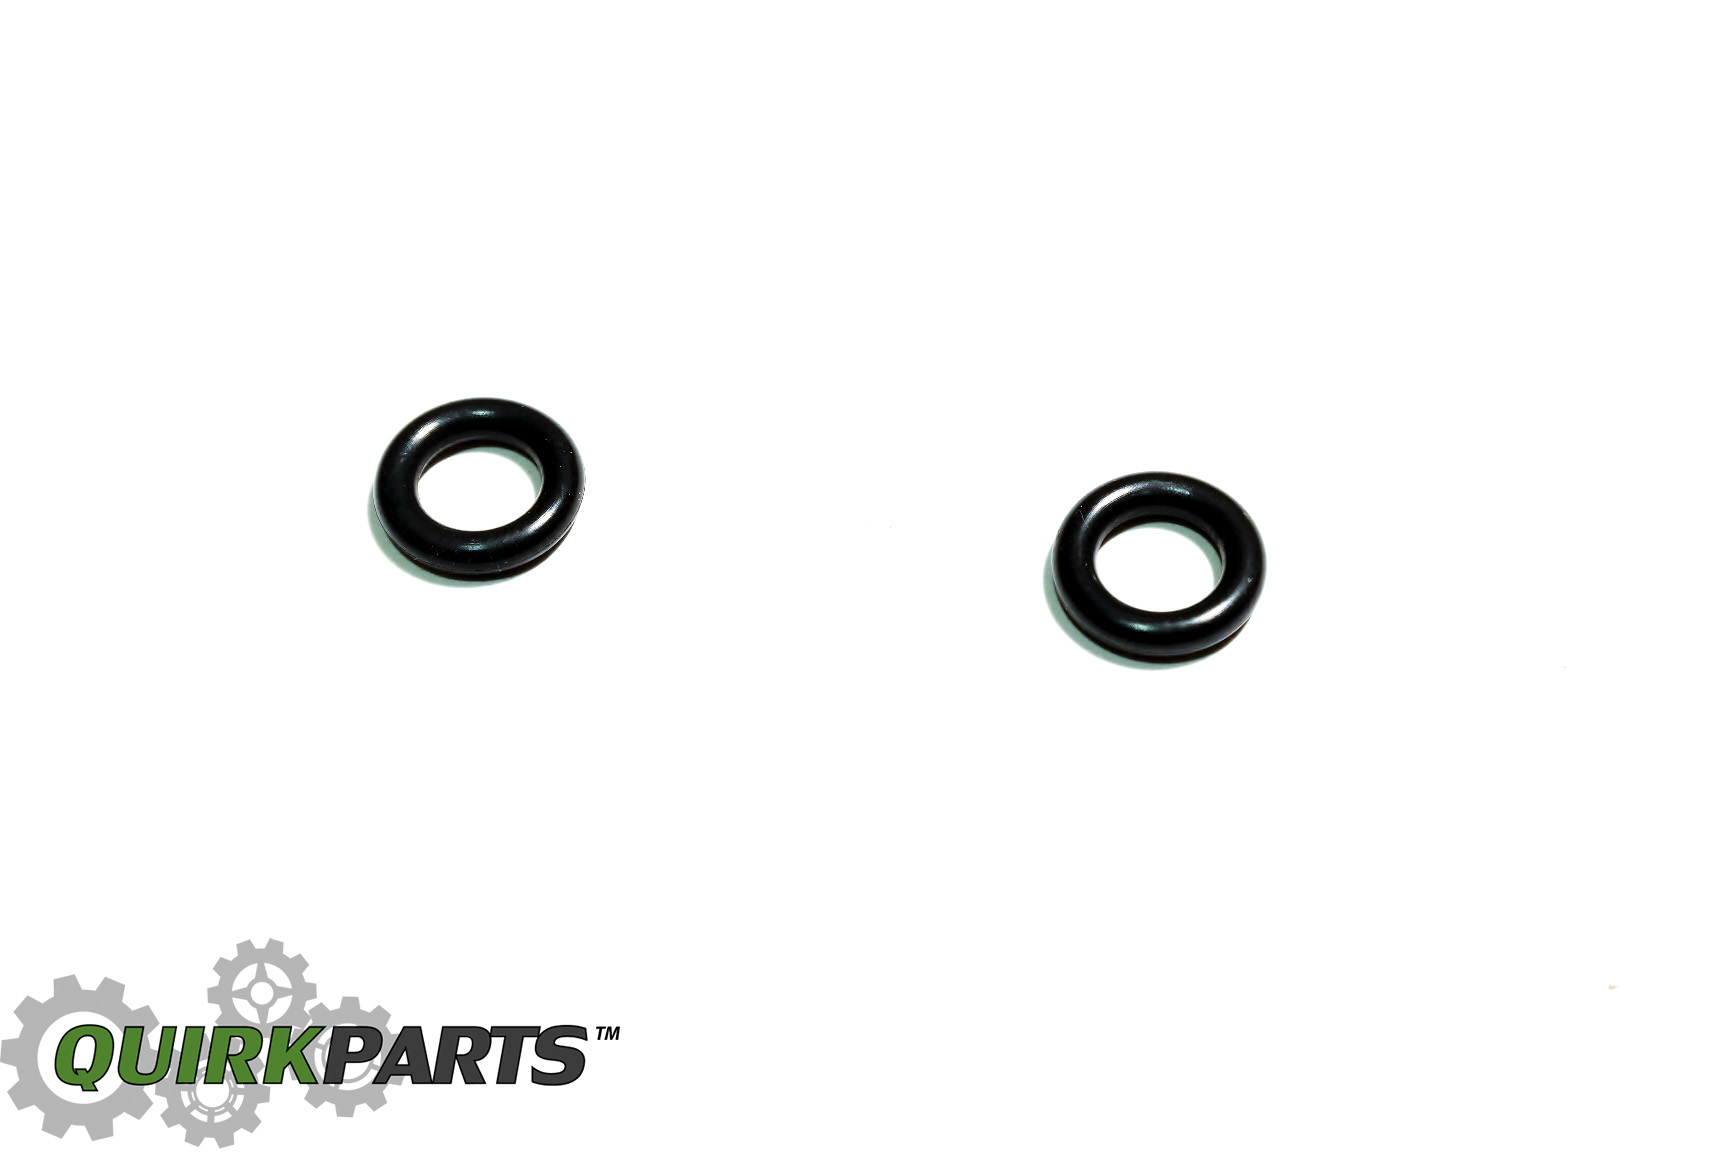 Nissan Frontier Pathfinder Xterra Seal O Ring 6 84mm Set